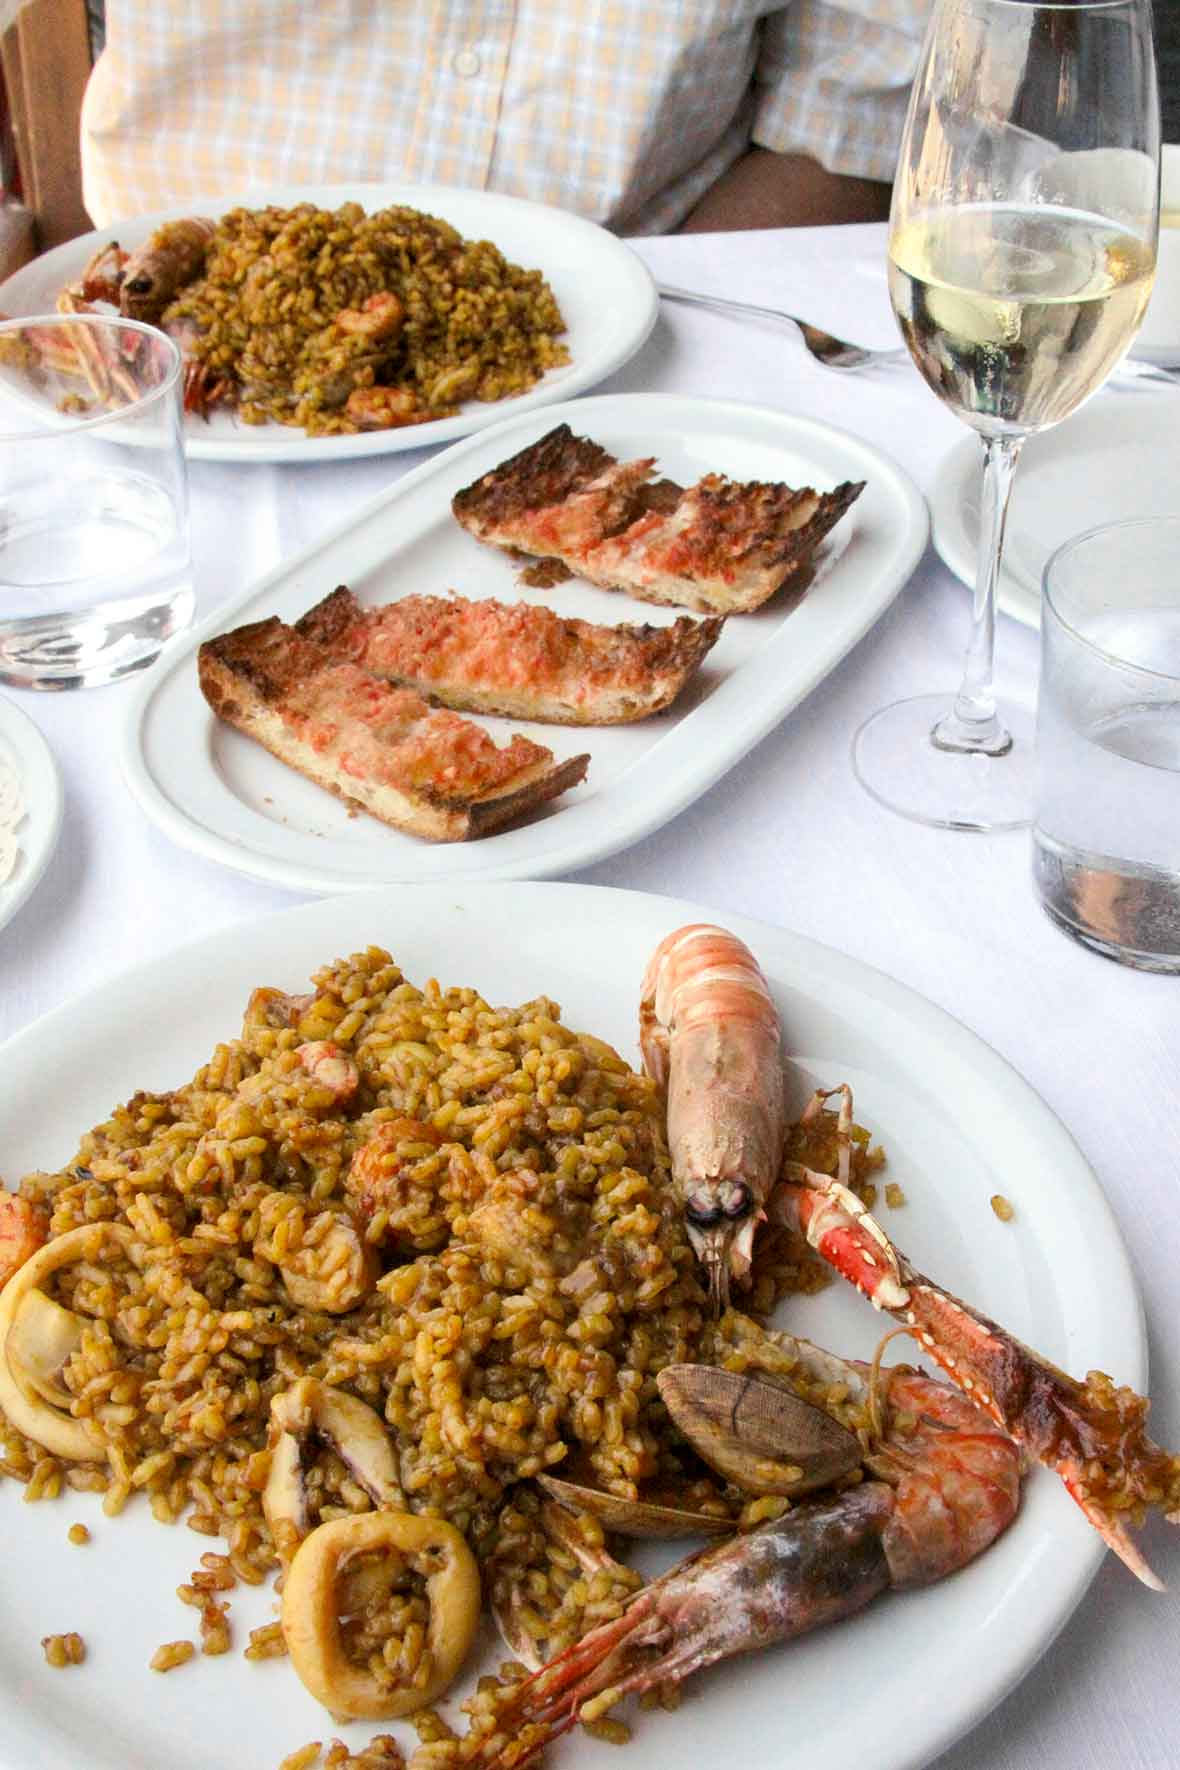 Paella and pan con tomate | Barceloneta